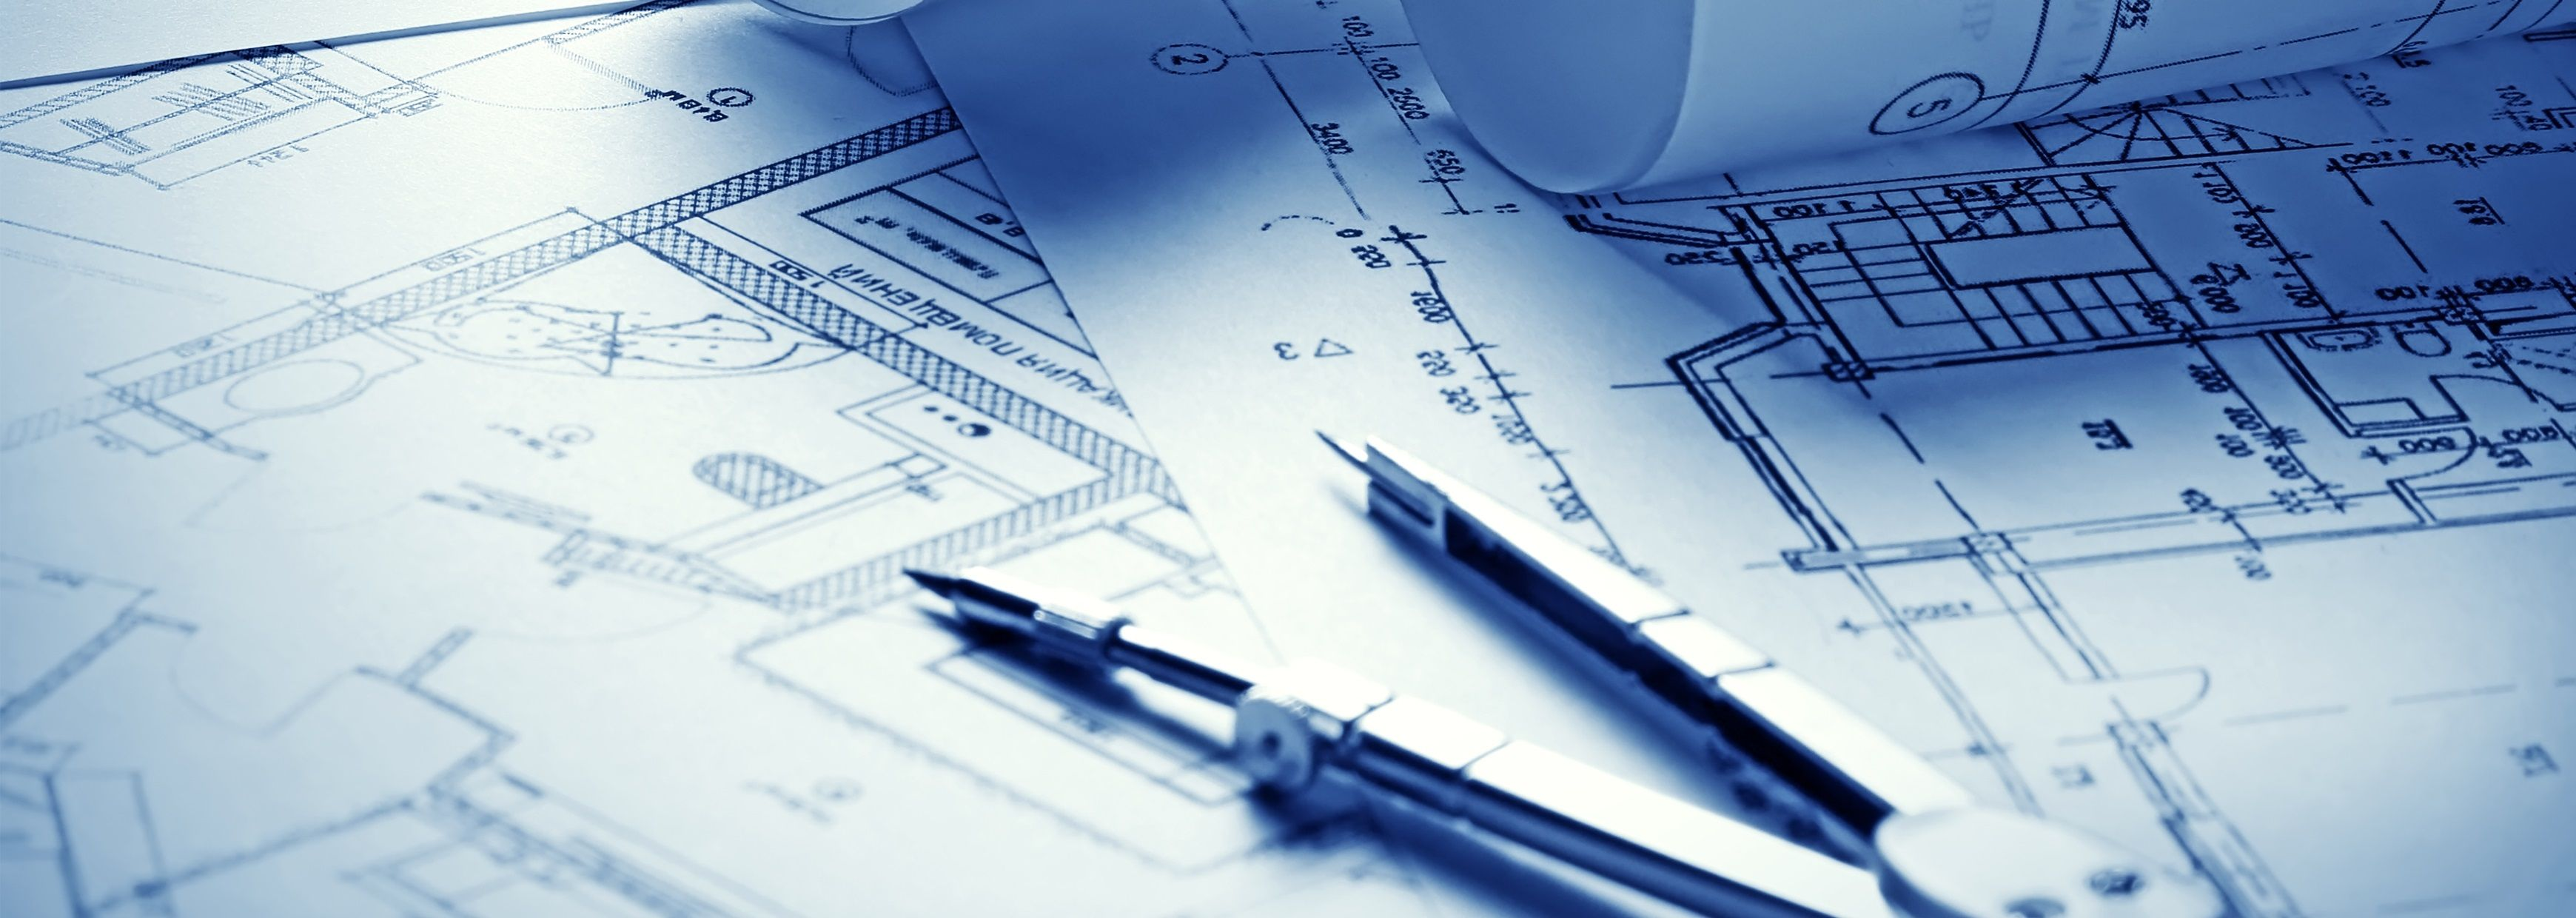 Structural Engineering Services Universalengg Engineering